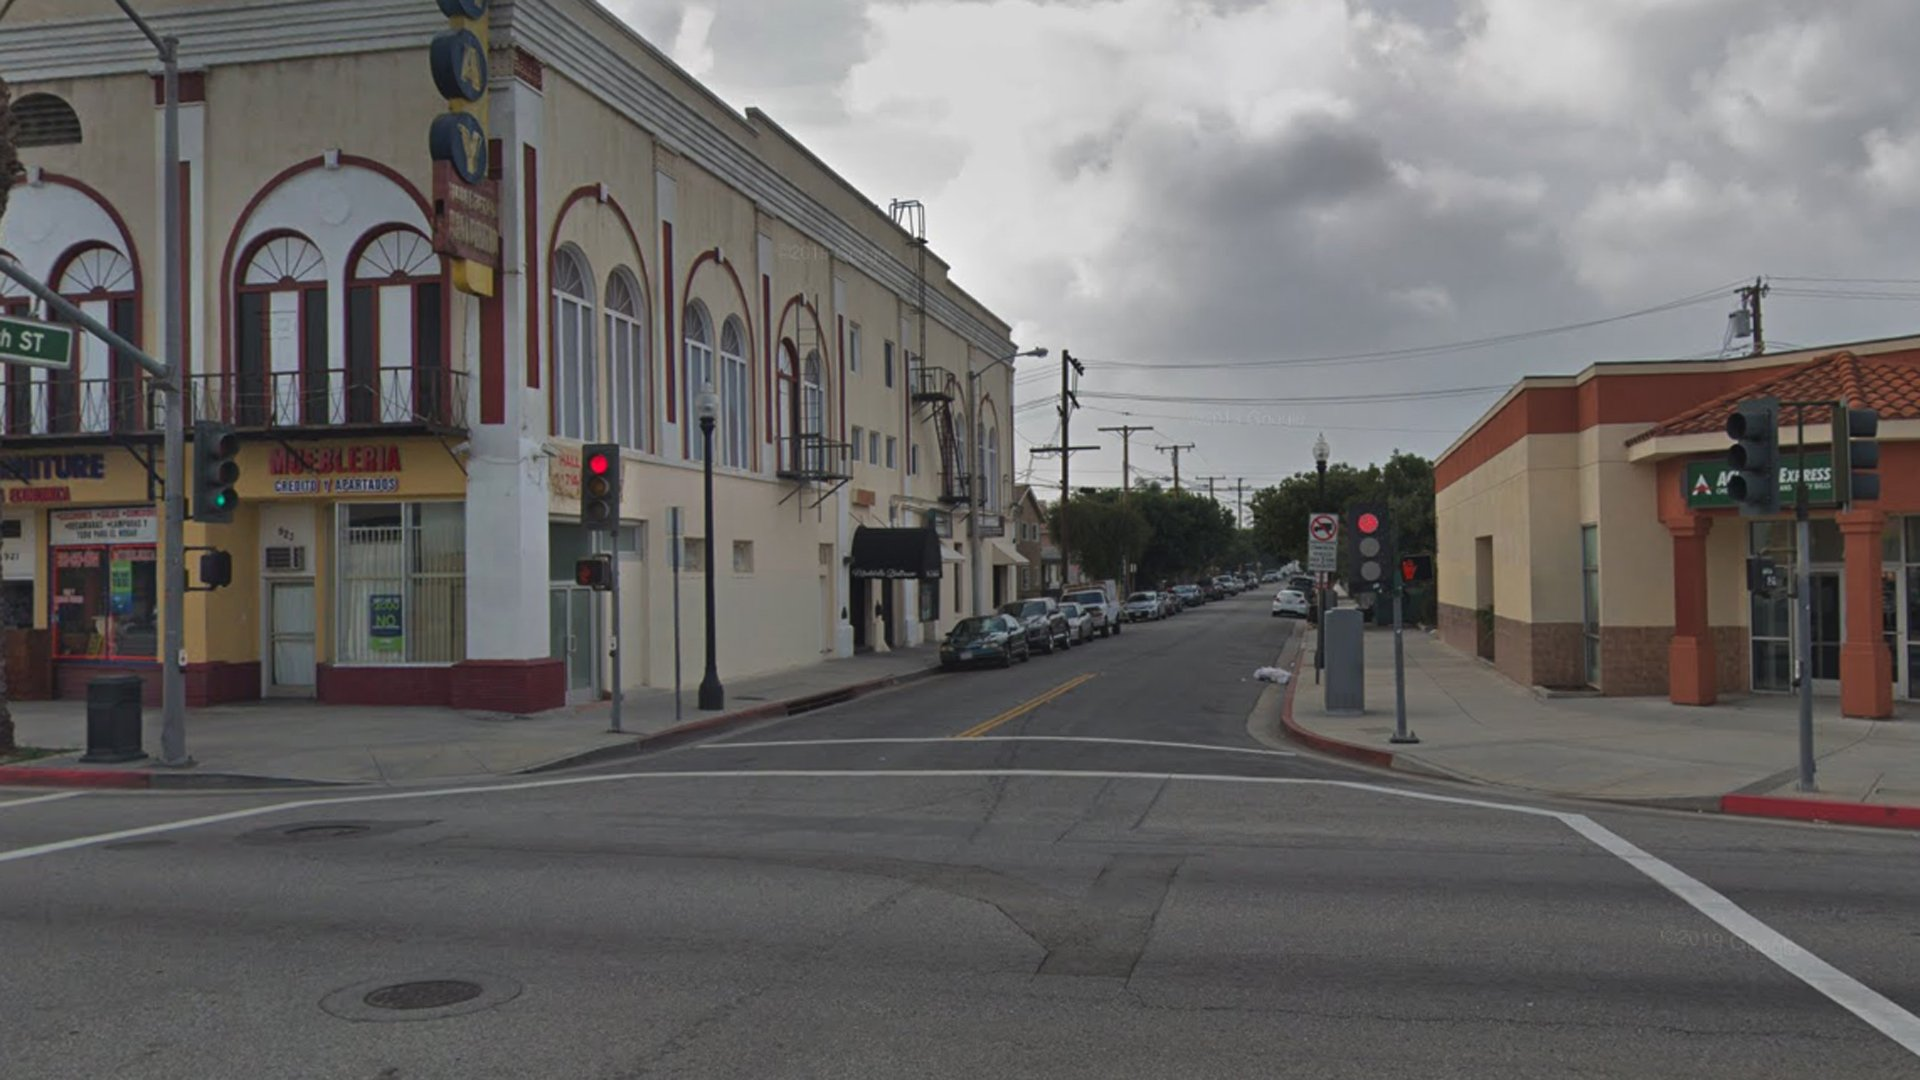 The 100 block of South 10th Street in Montebello, as see in a Google Street View image.